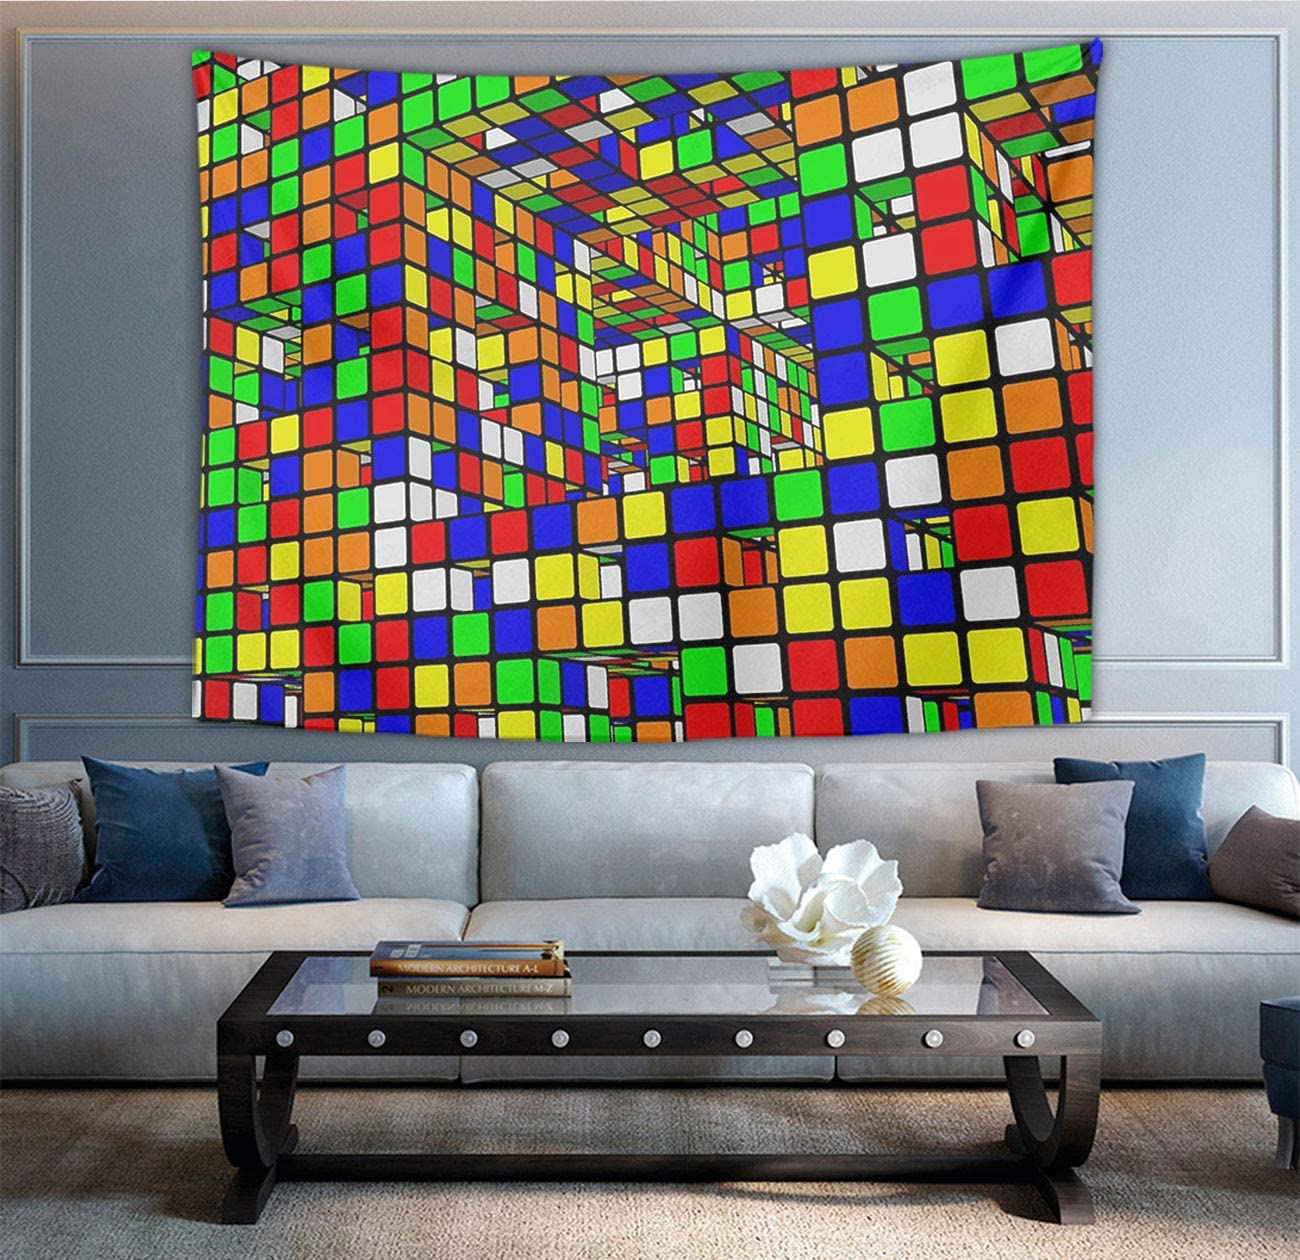 NiYoung Rubiks Cube World Tapestry, Bohemian Wall Tapestry Wall Hanging Tapestry - Wall Indian Decorations Wall Art Living Room Bedroom Dorm Room 40 x 60 inches